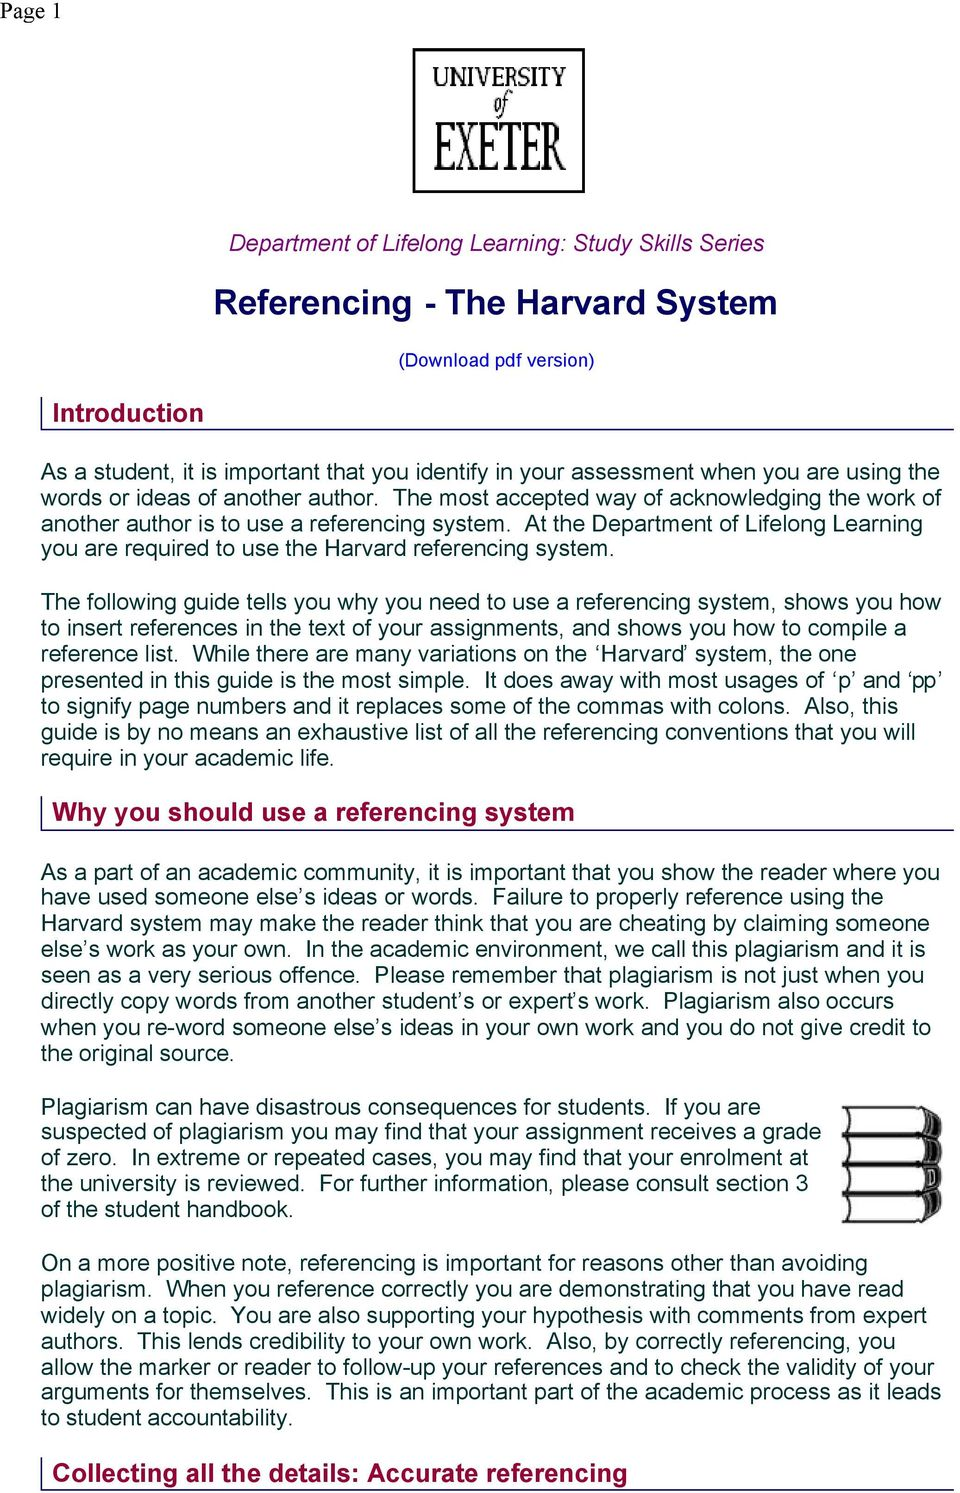 At the Department of Lifelong Learning you are required to use the Harvard referencing system.